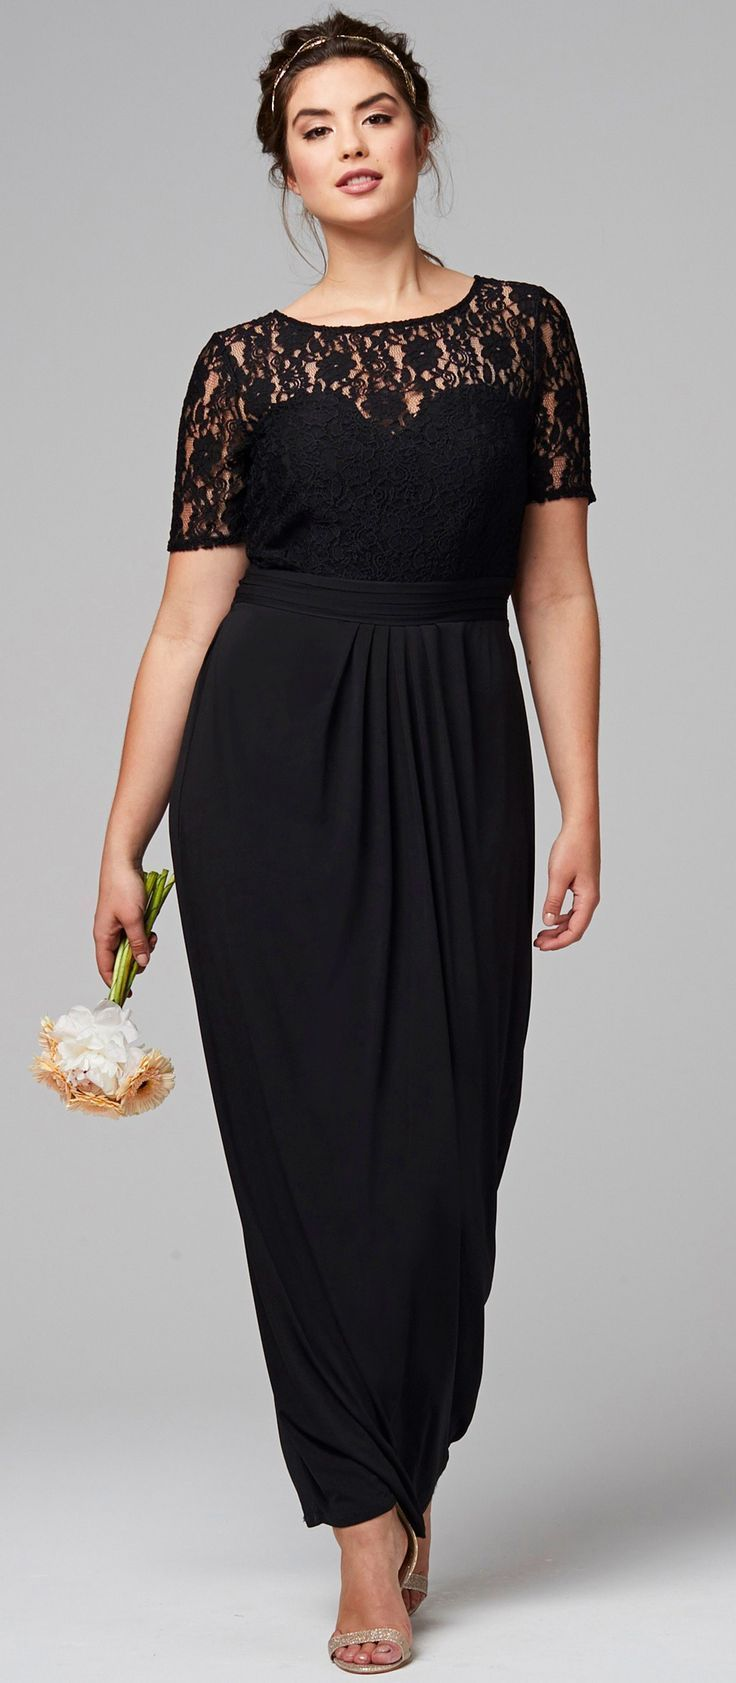 a64c8c932db 45 Plus Size Wedding Guest Dresses  with Sleeves  - Plus Size Cocktail  Dresses - alexawebb.com